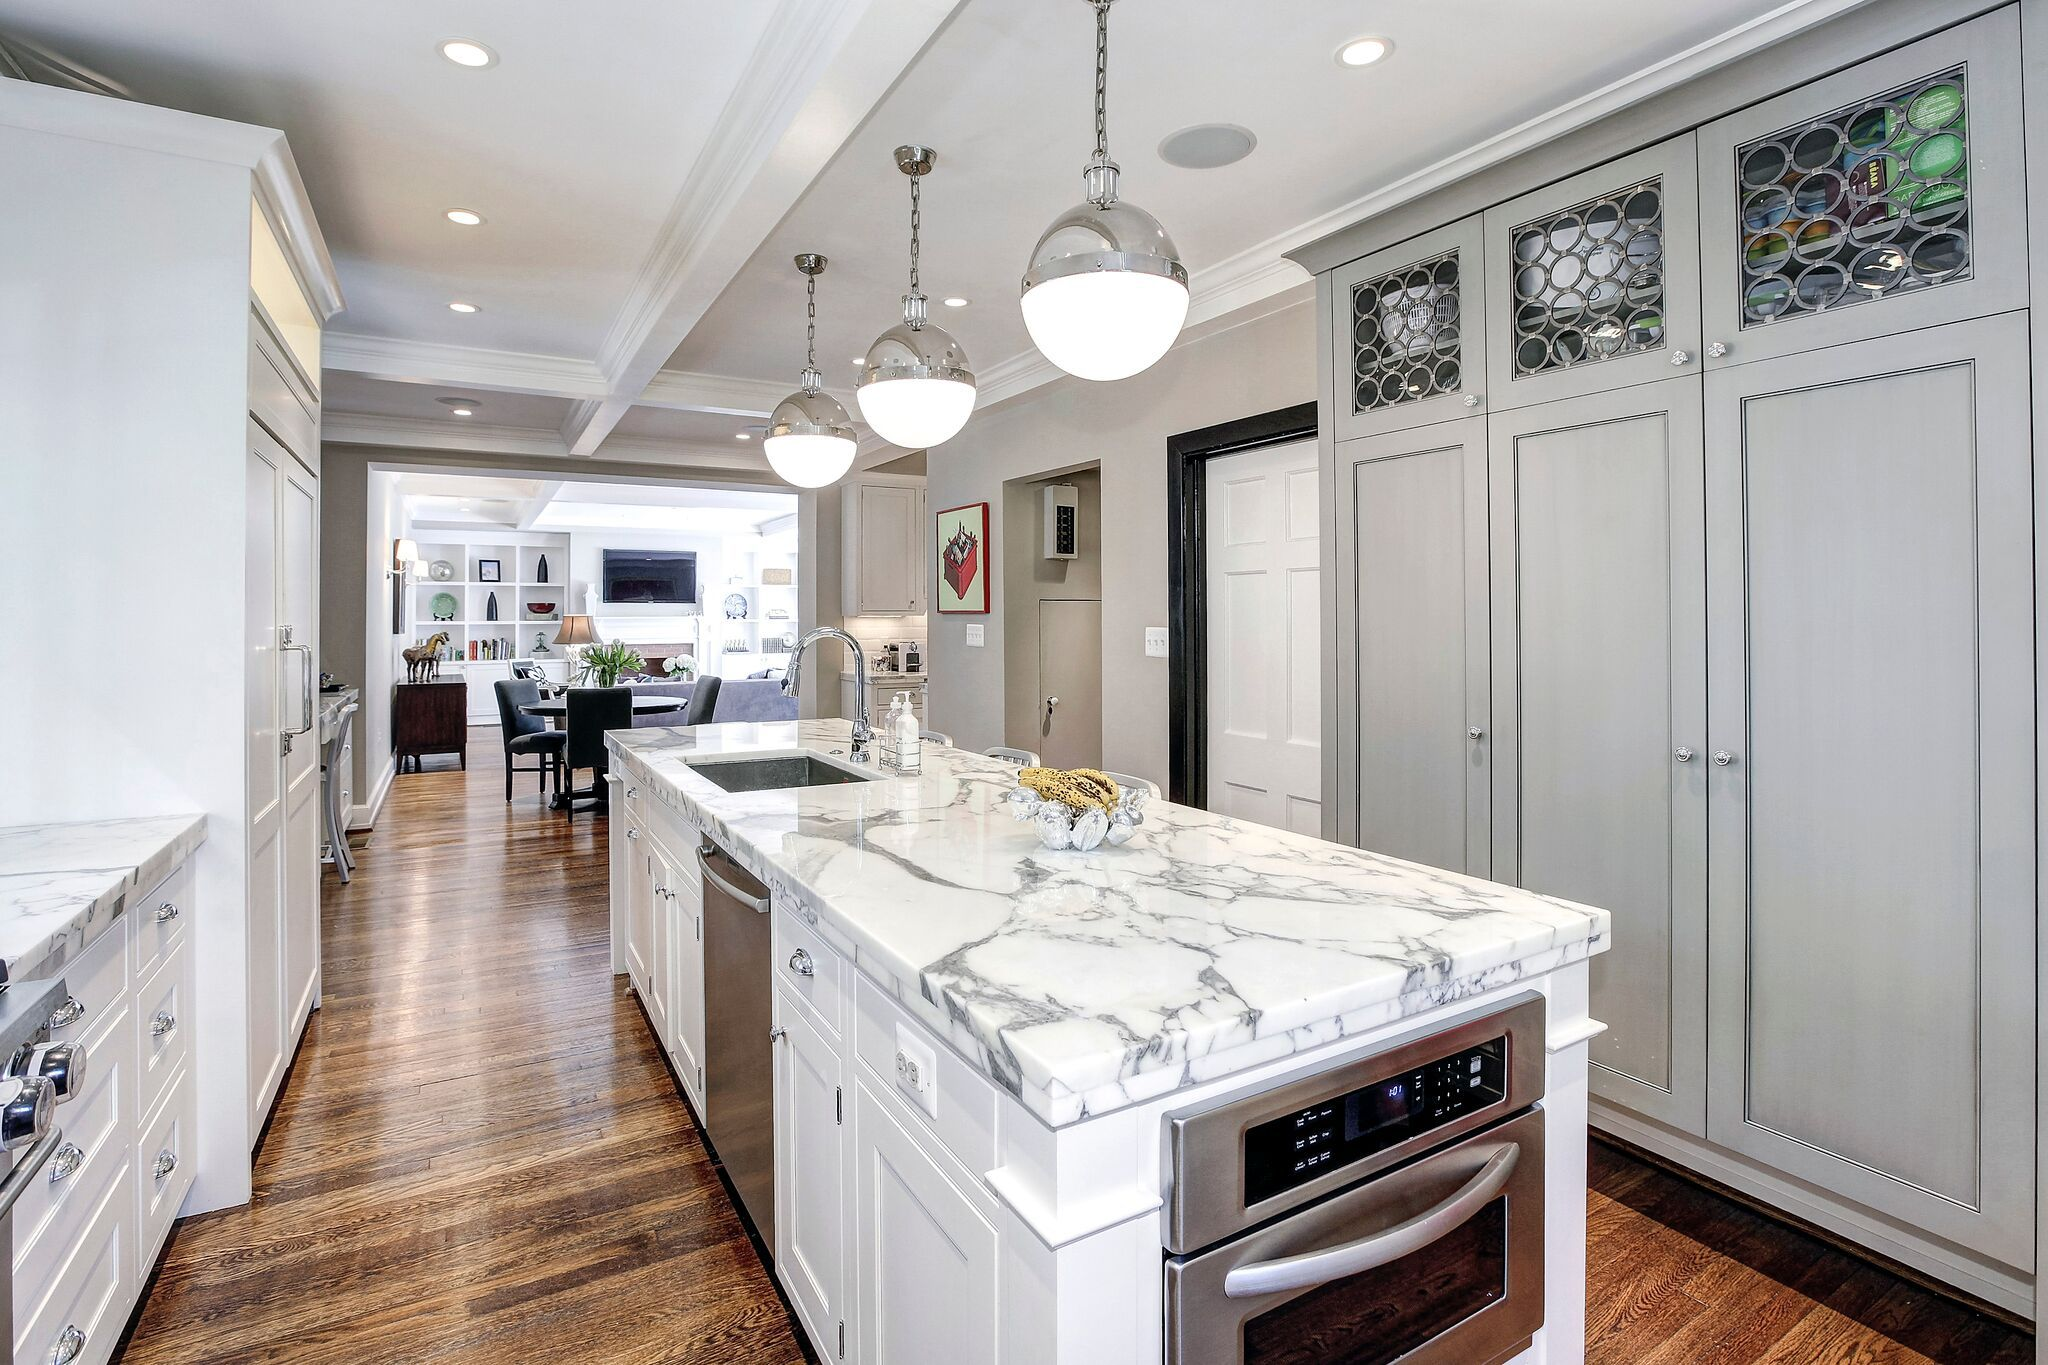 Take A Look Inside The Obamas Gorgeous Post White House Home In Washington D C Obama House Celebrity Kitchens Celebrity Houses